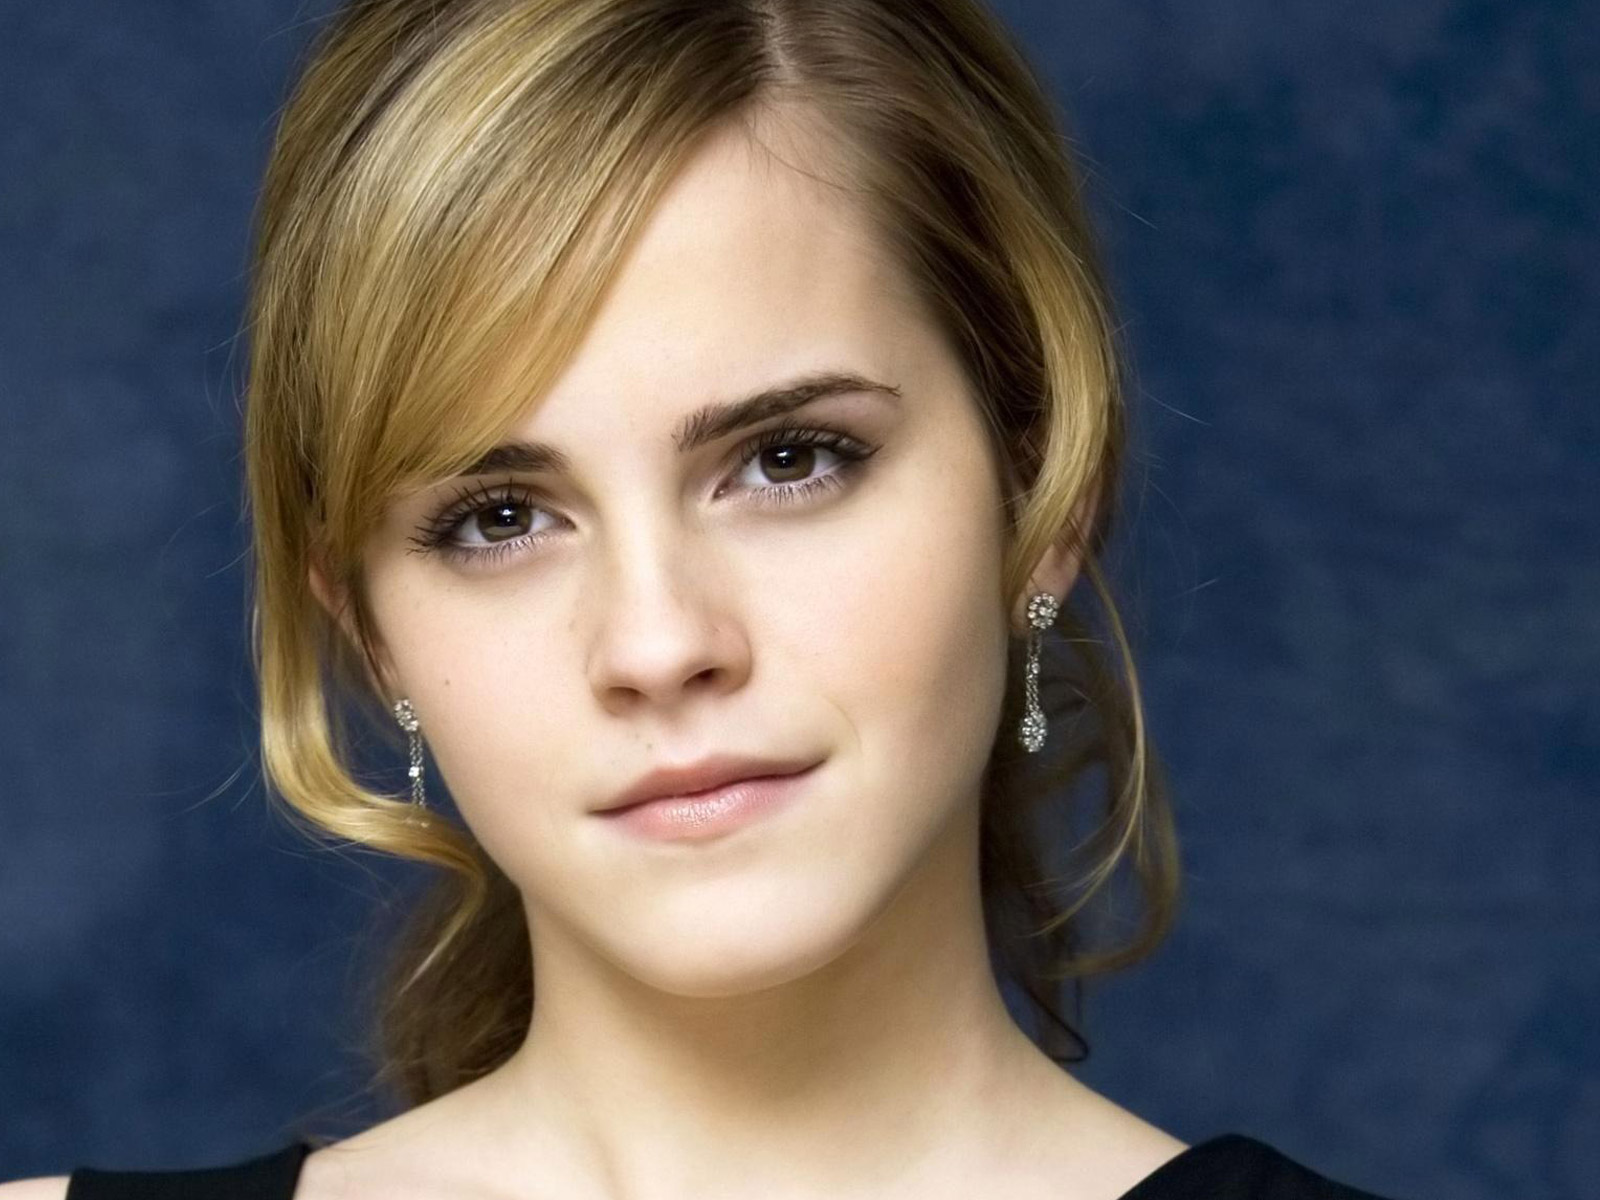 Emma Watson Beautiful 2009 431.57 Kb